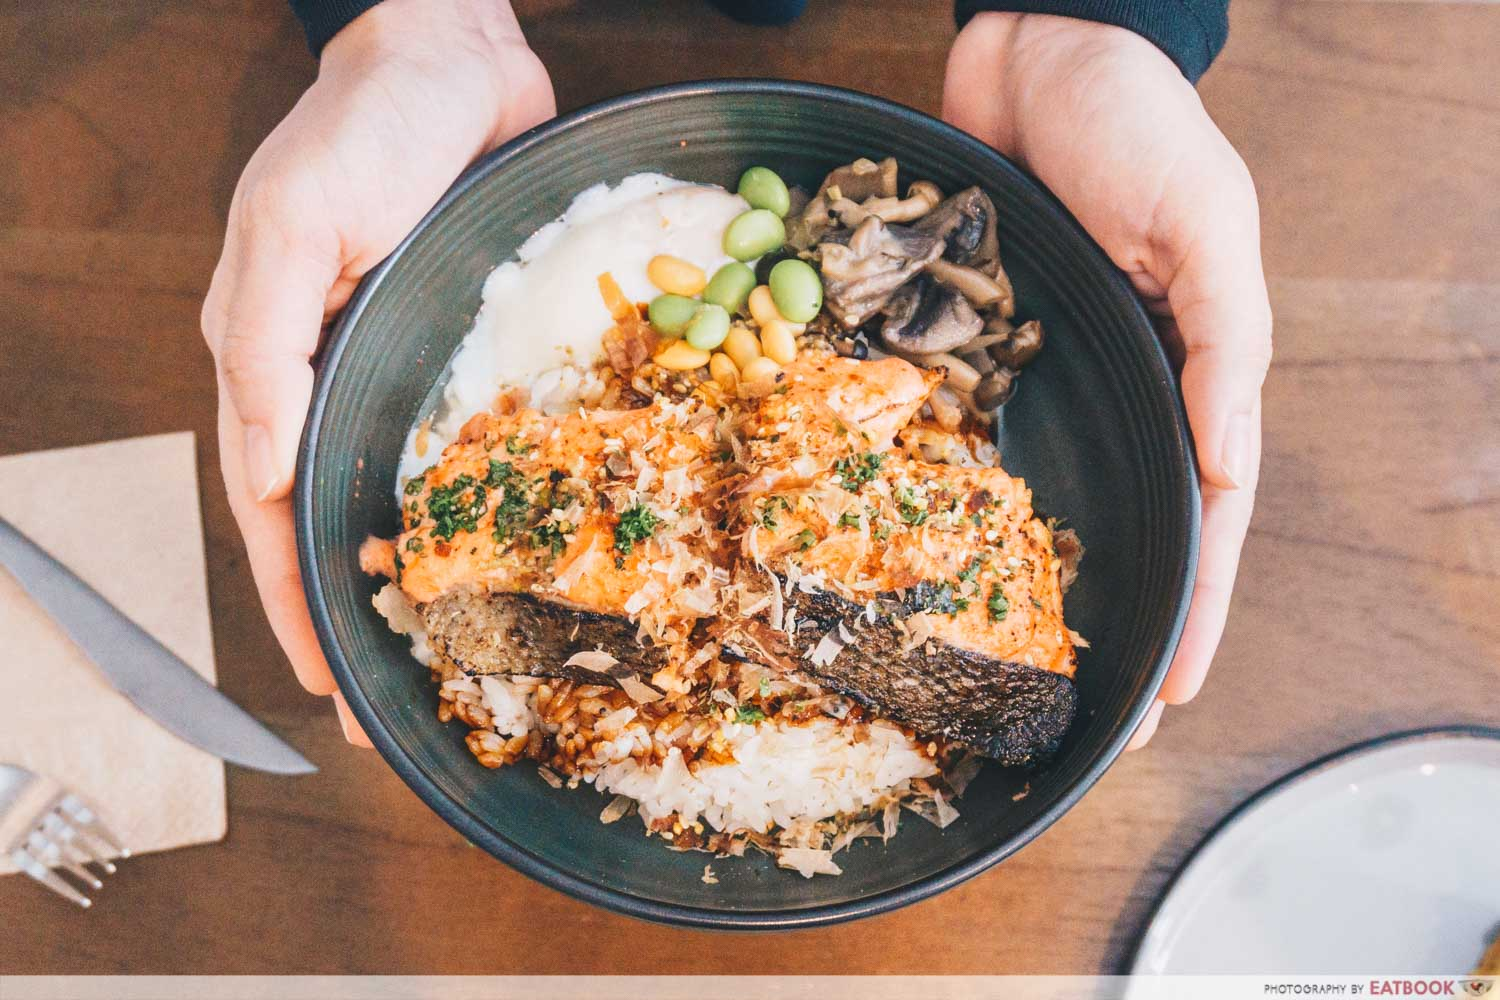 Torched Mentaiko Salmon Rice Bowl